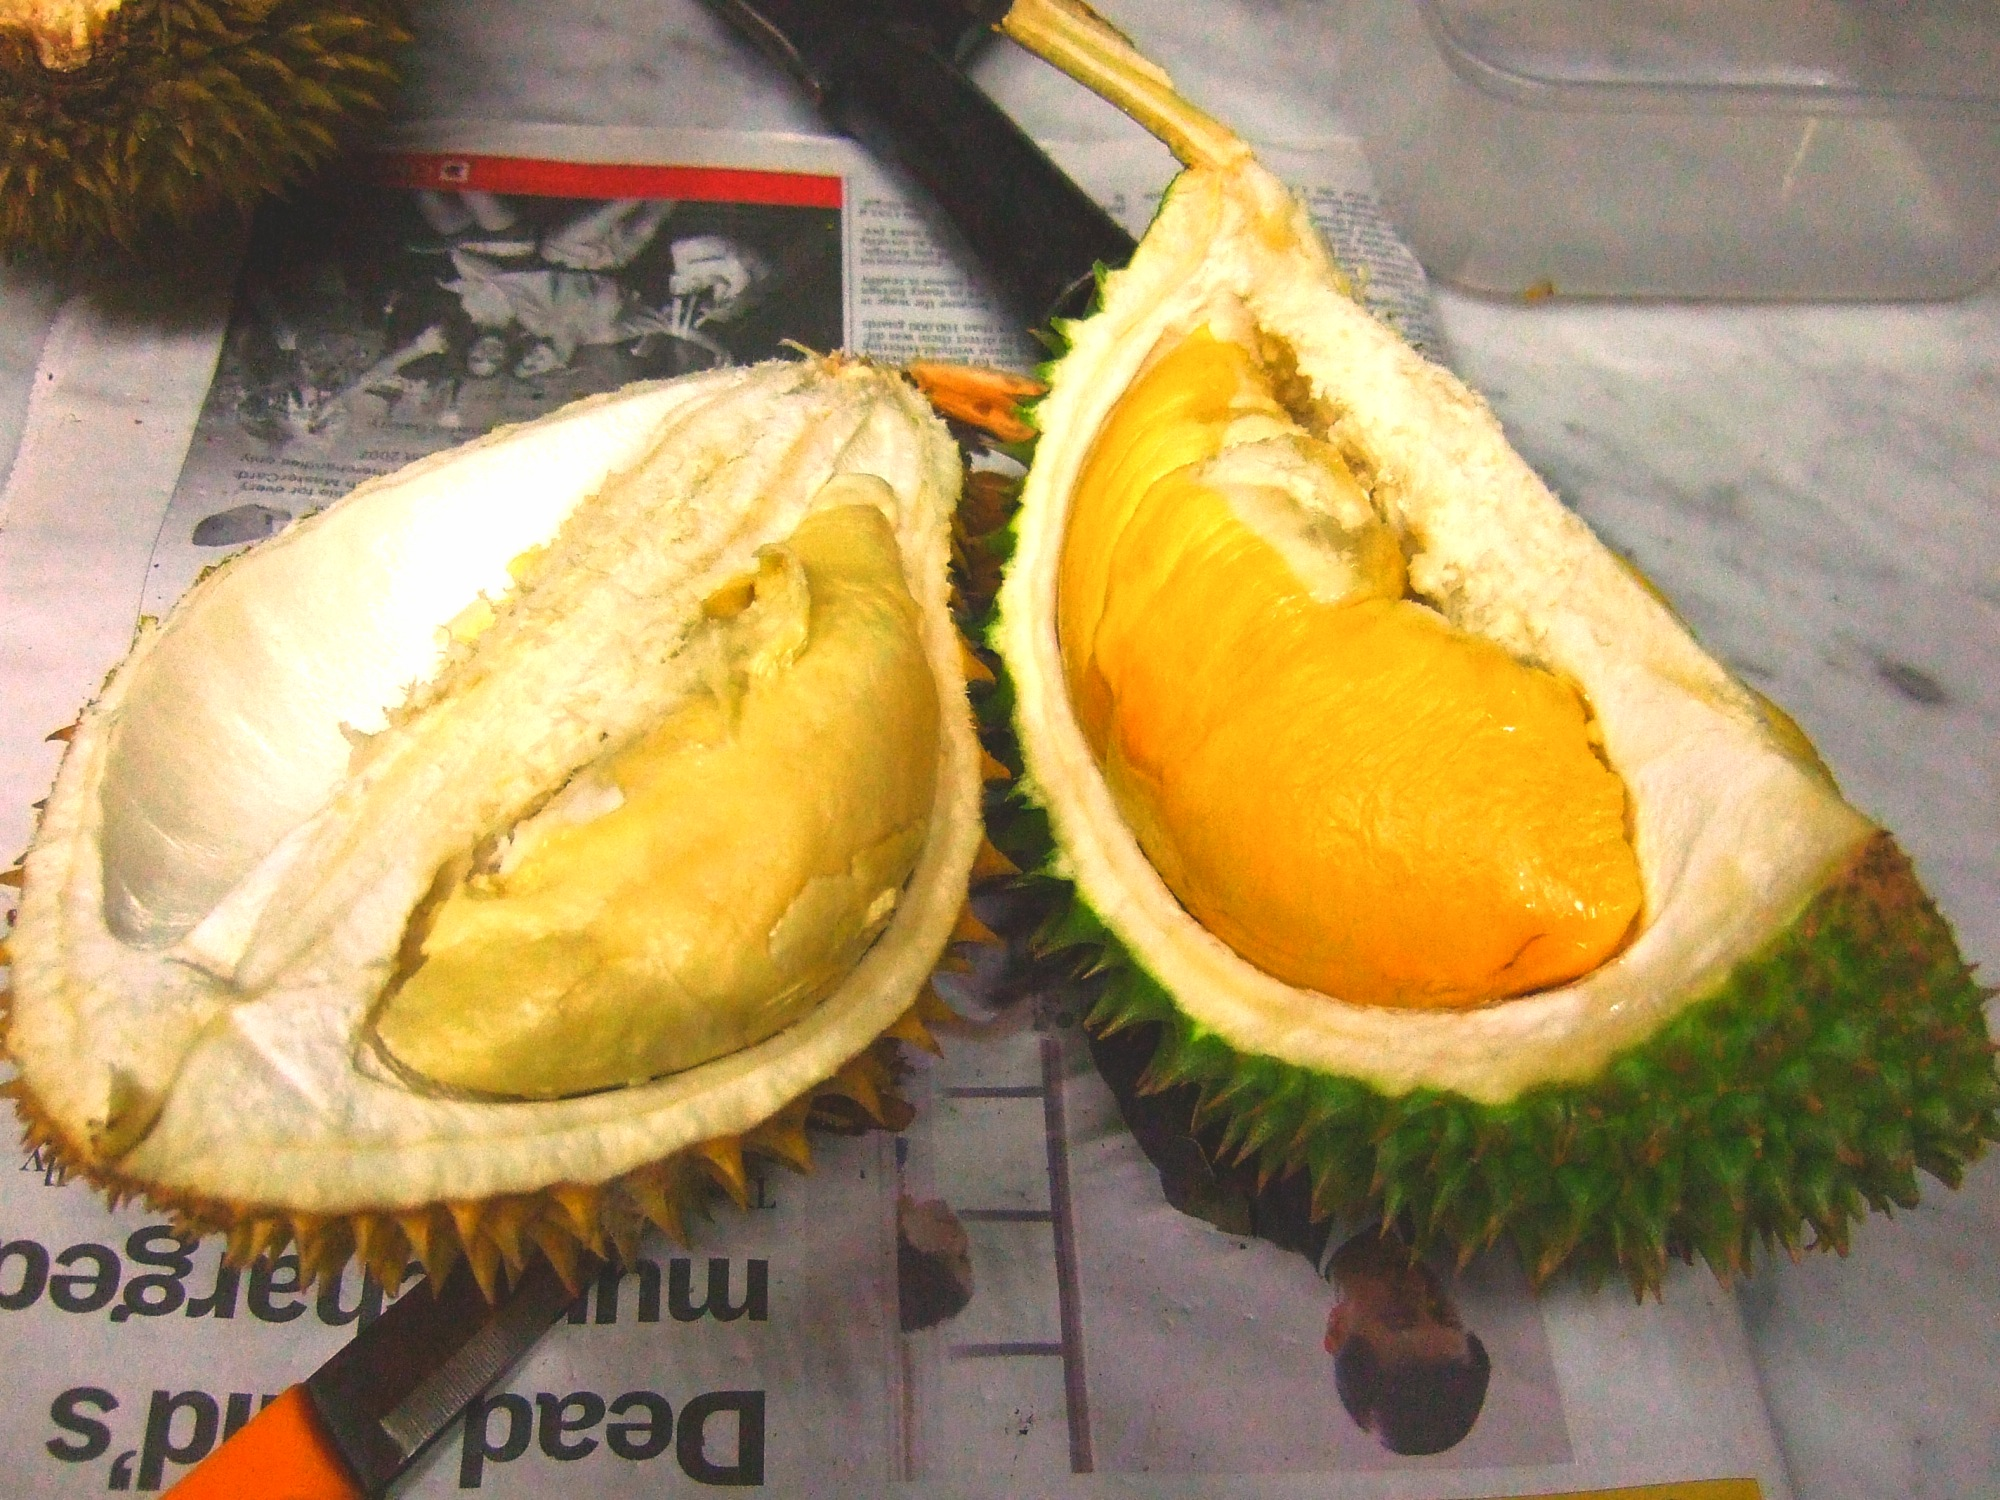 8 things you need to know about durian fruit the world s smelliest